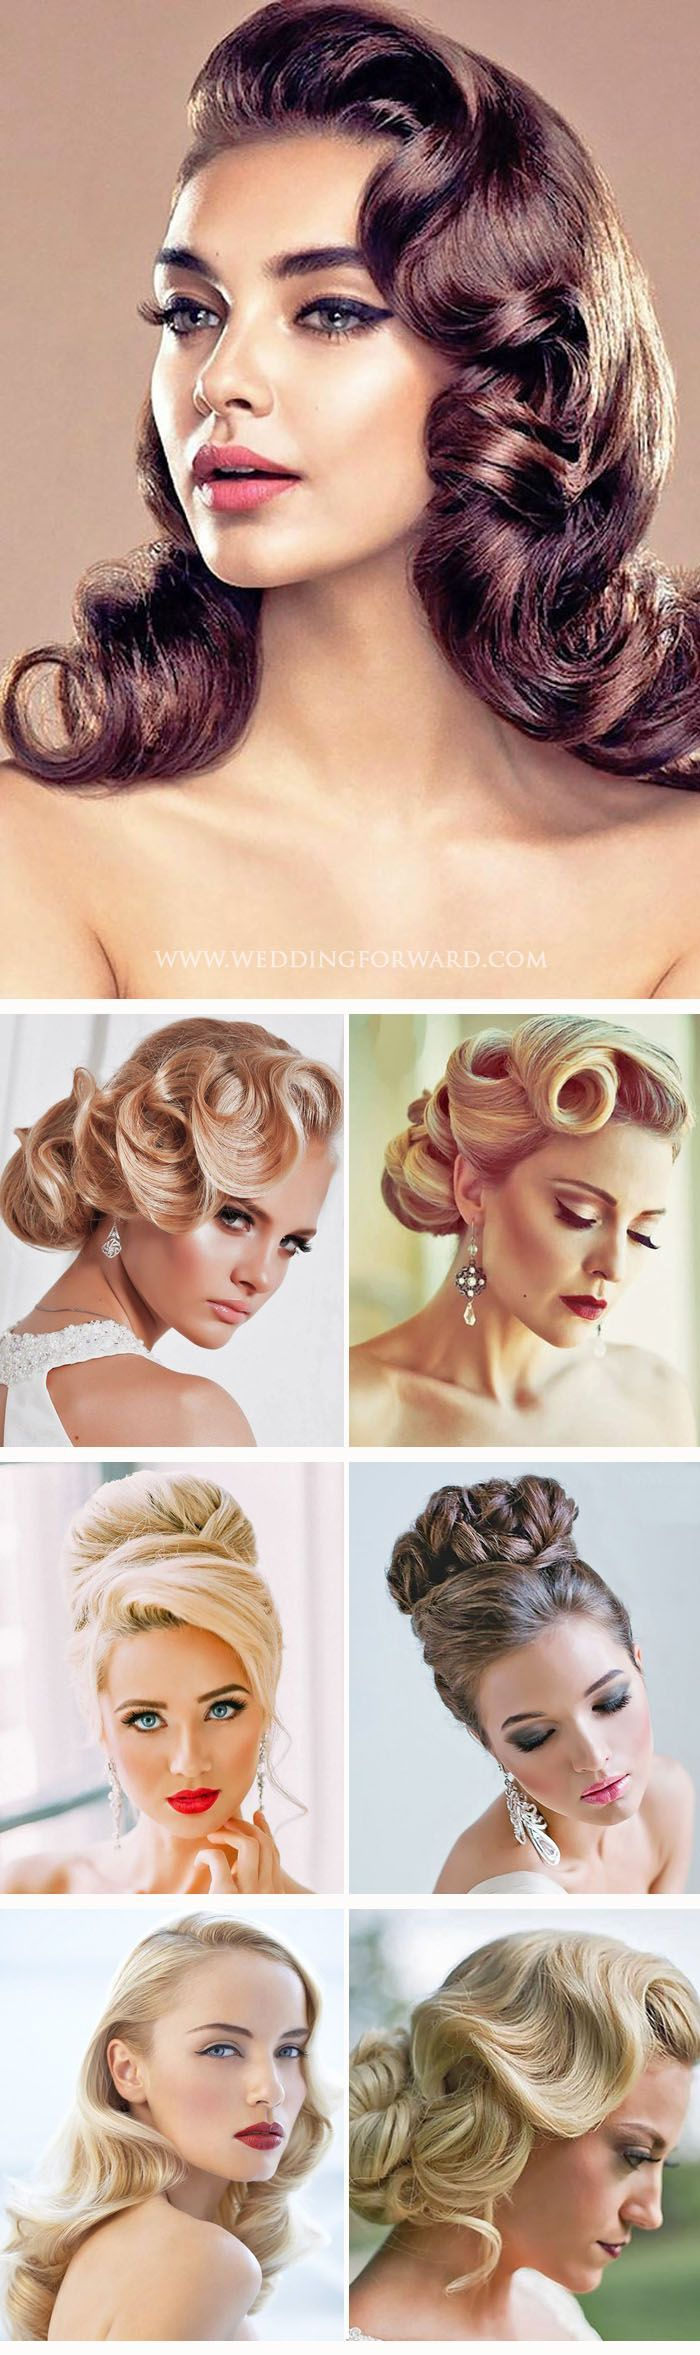 24 Utterly Gorgeous Vintage Wedding Hairstyles ❤ From 20s Gatsby style and sen...